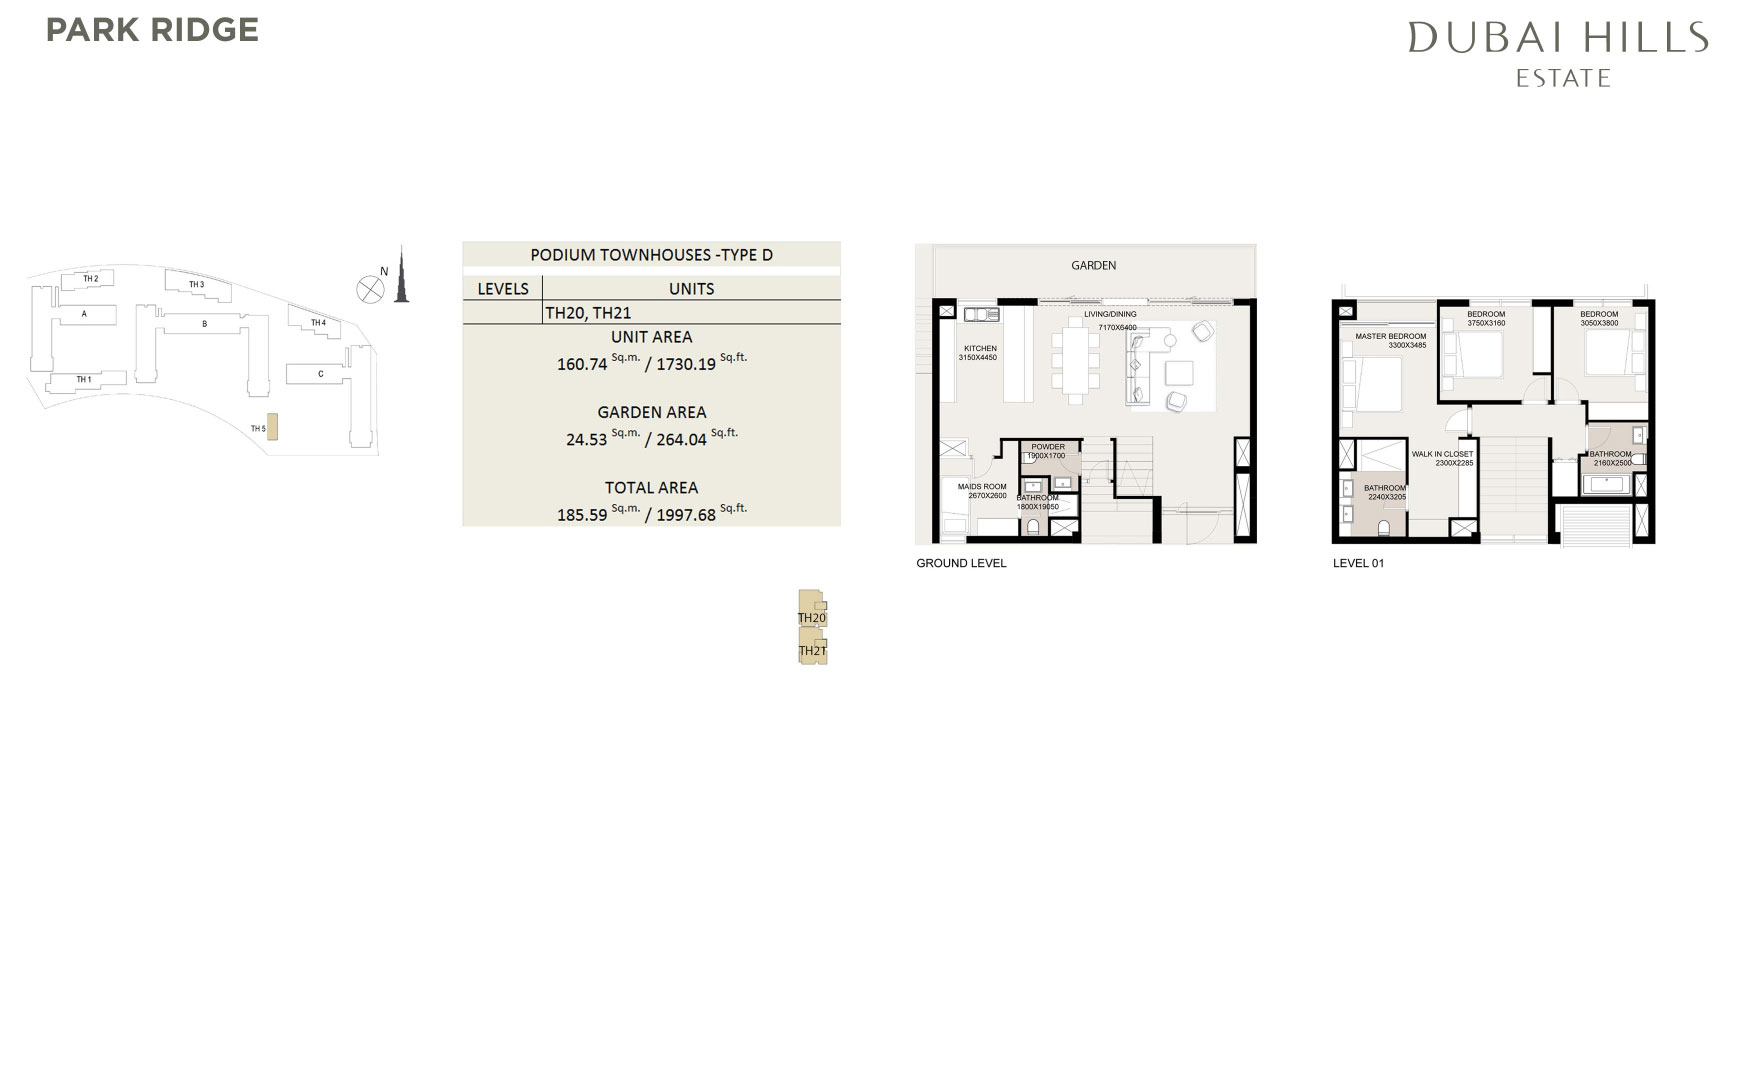 Podium Townhouses 1997 68sqft